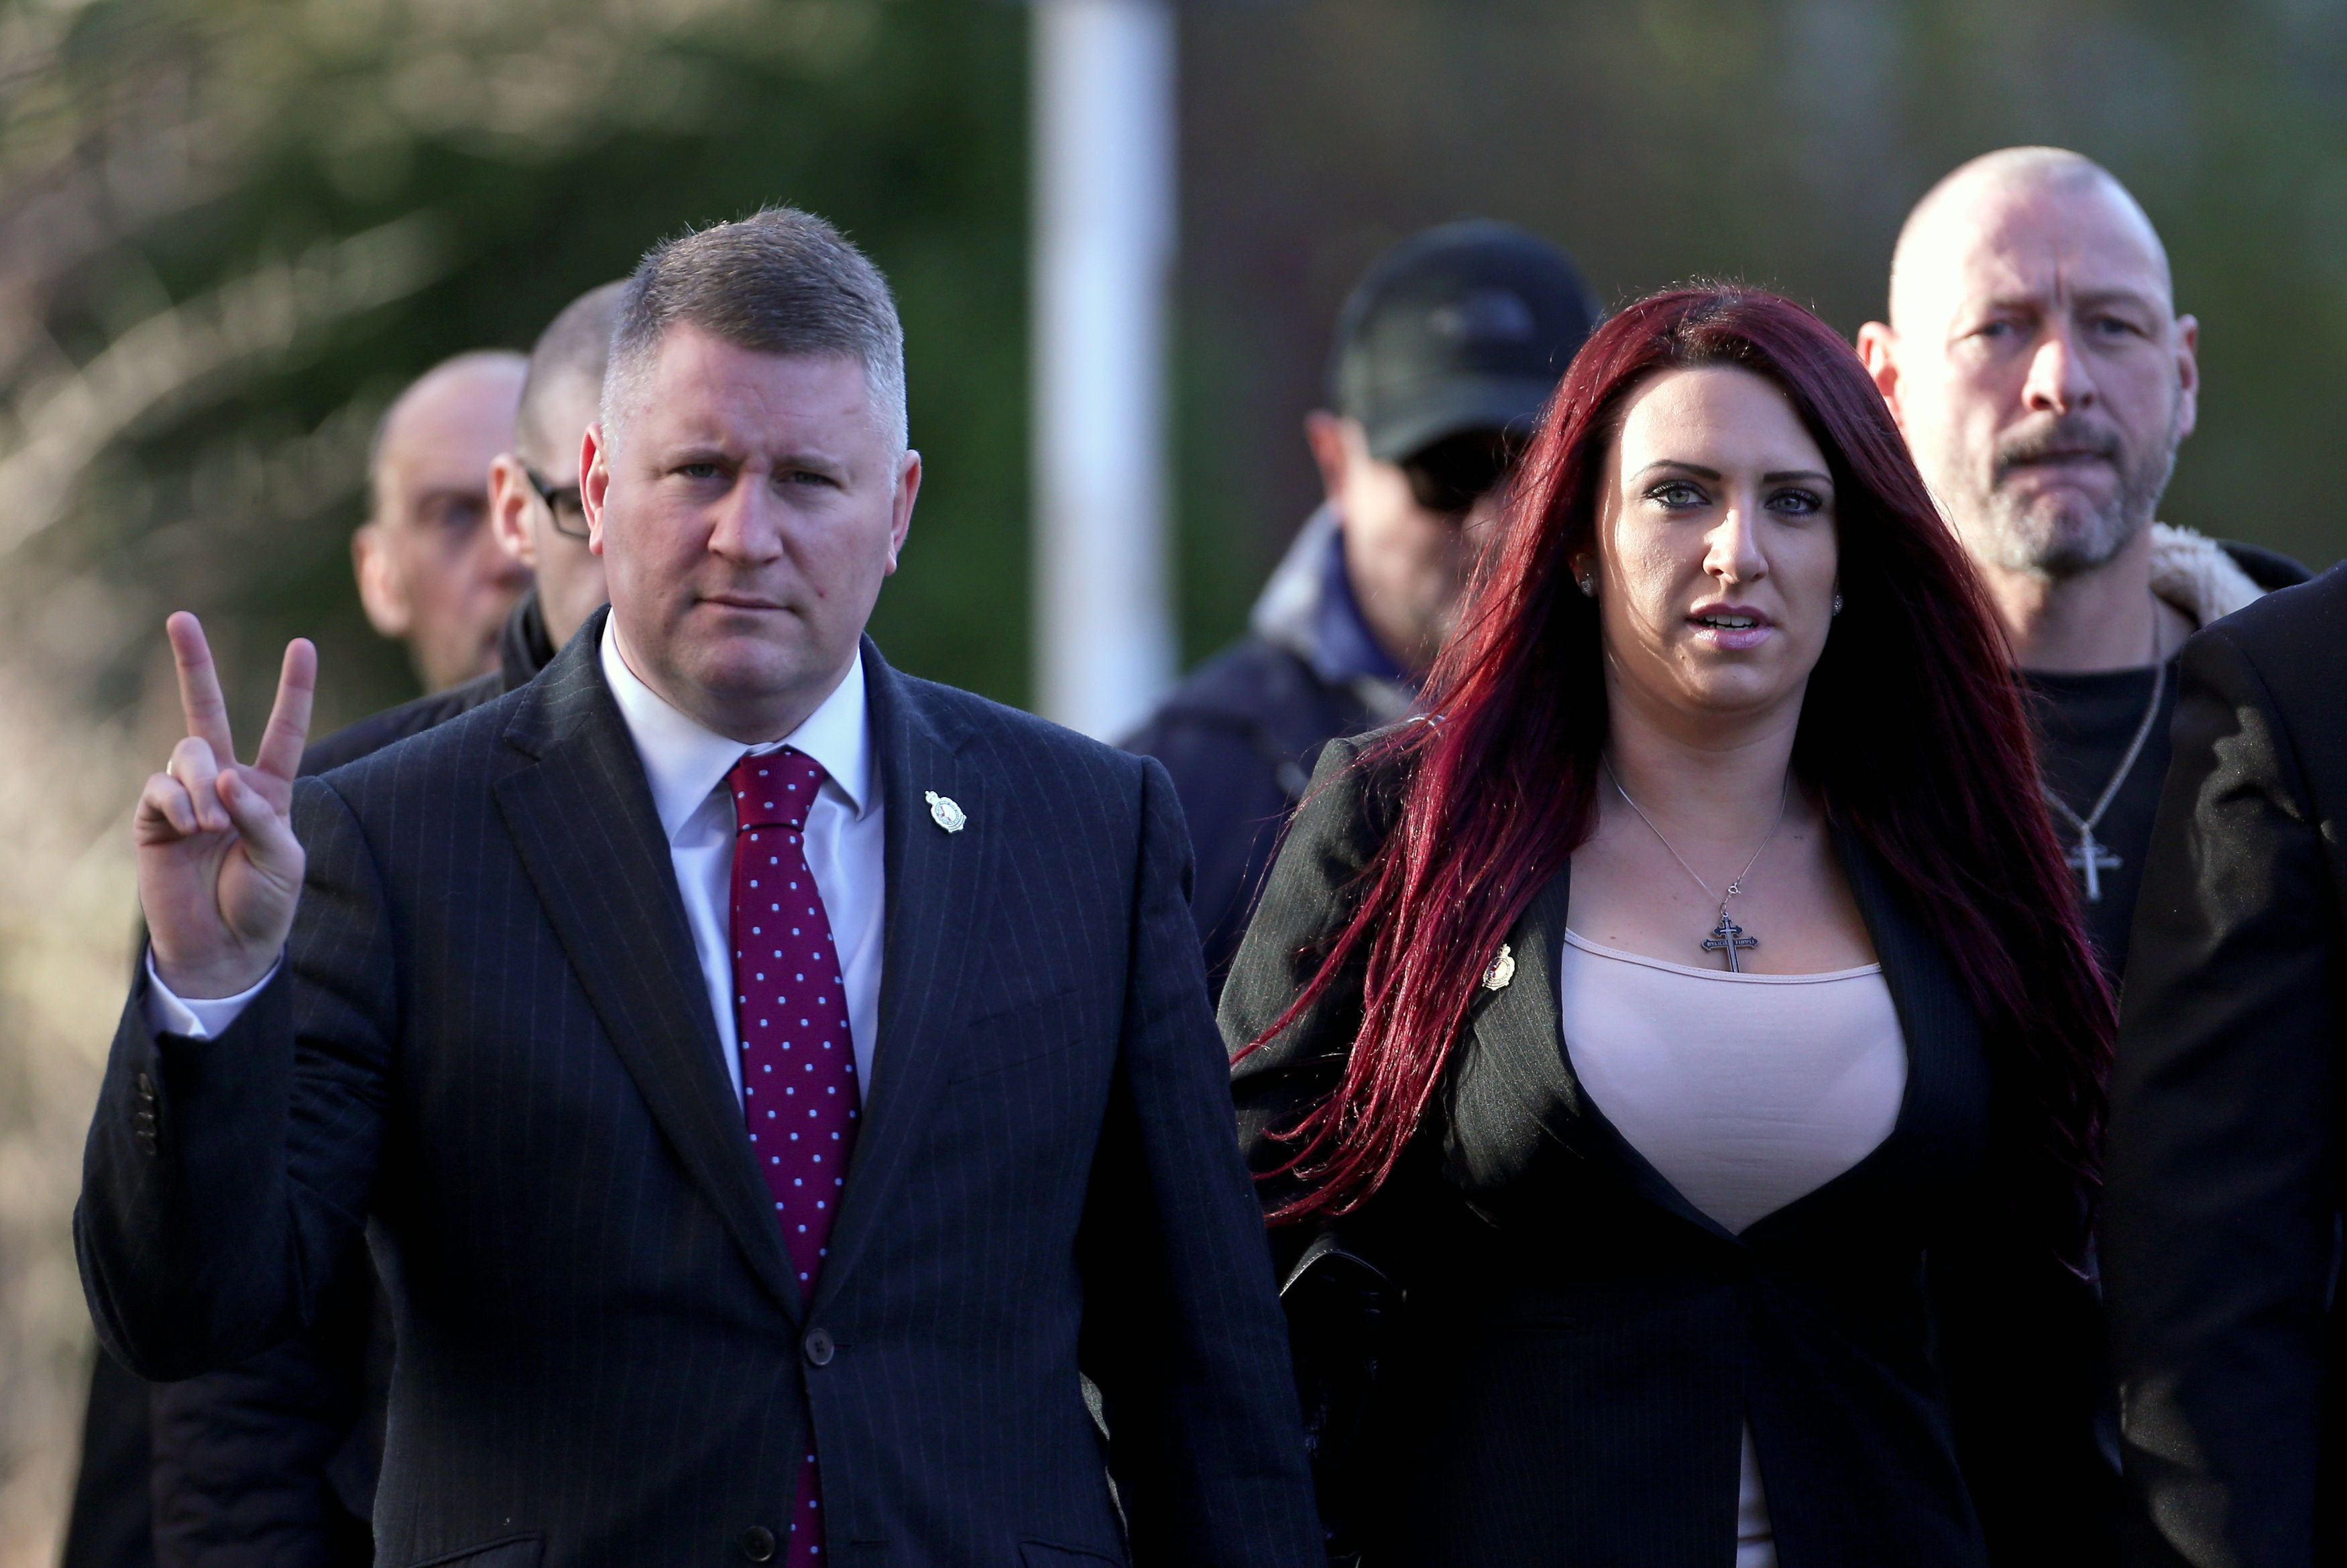 UK Court Detains Fringe Far-Right Group Britain First's Leaders